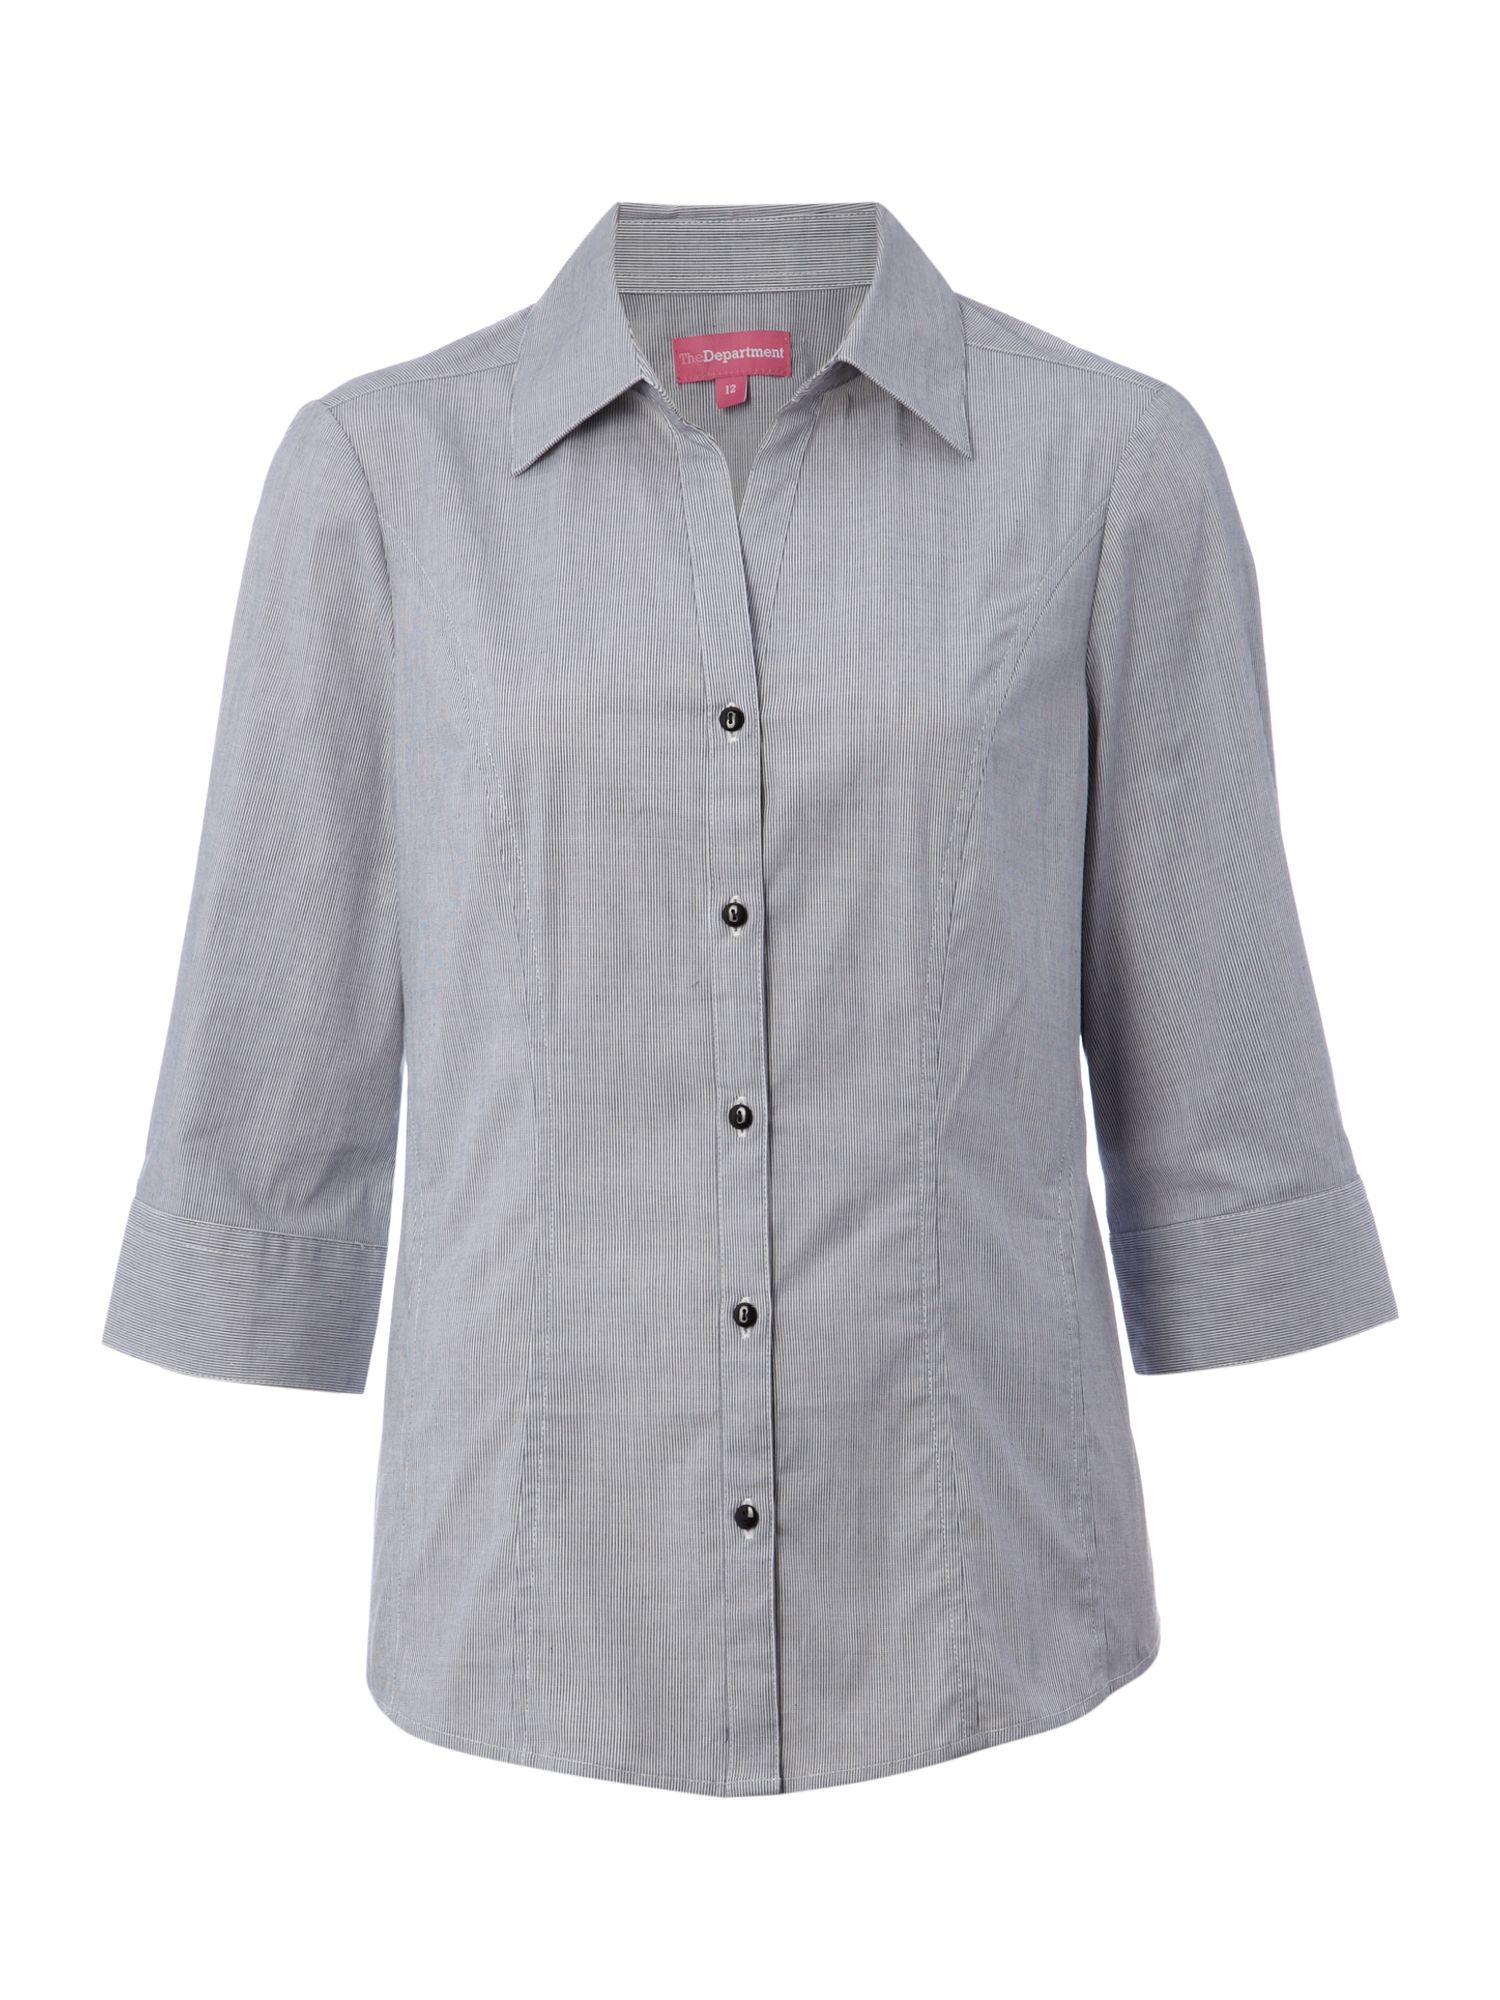 Stripe workshirt